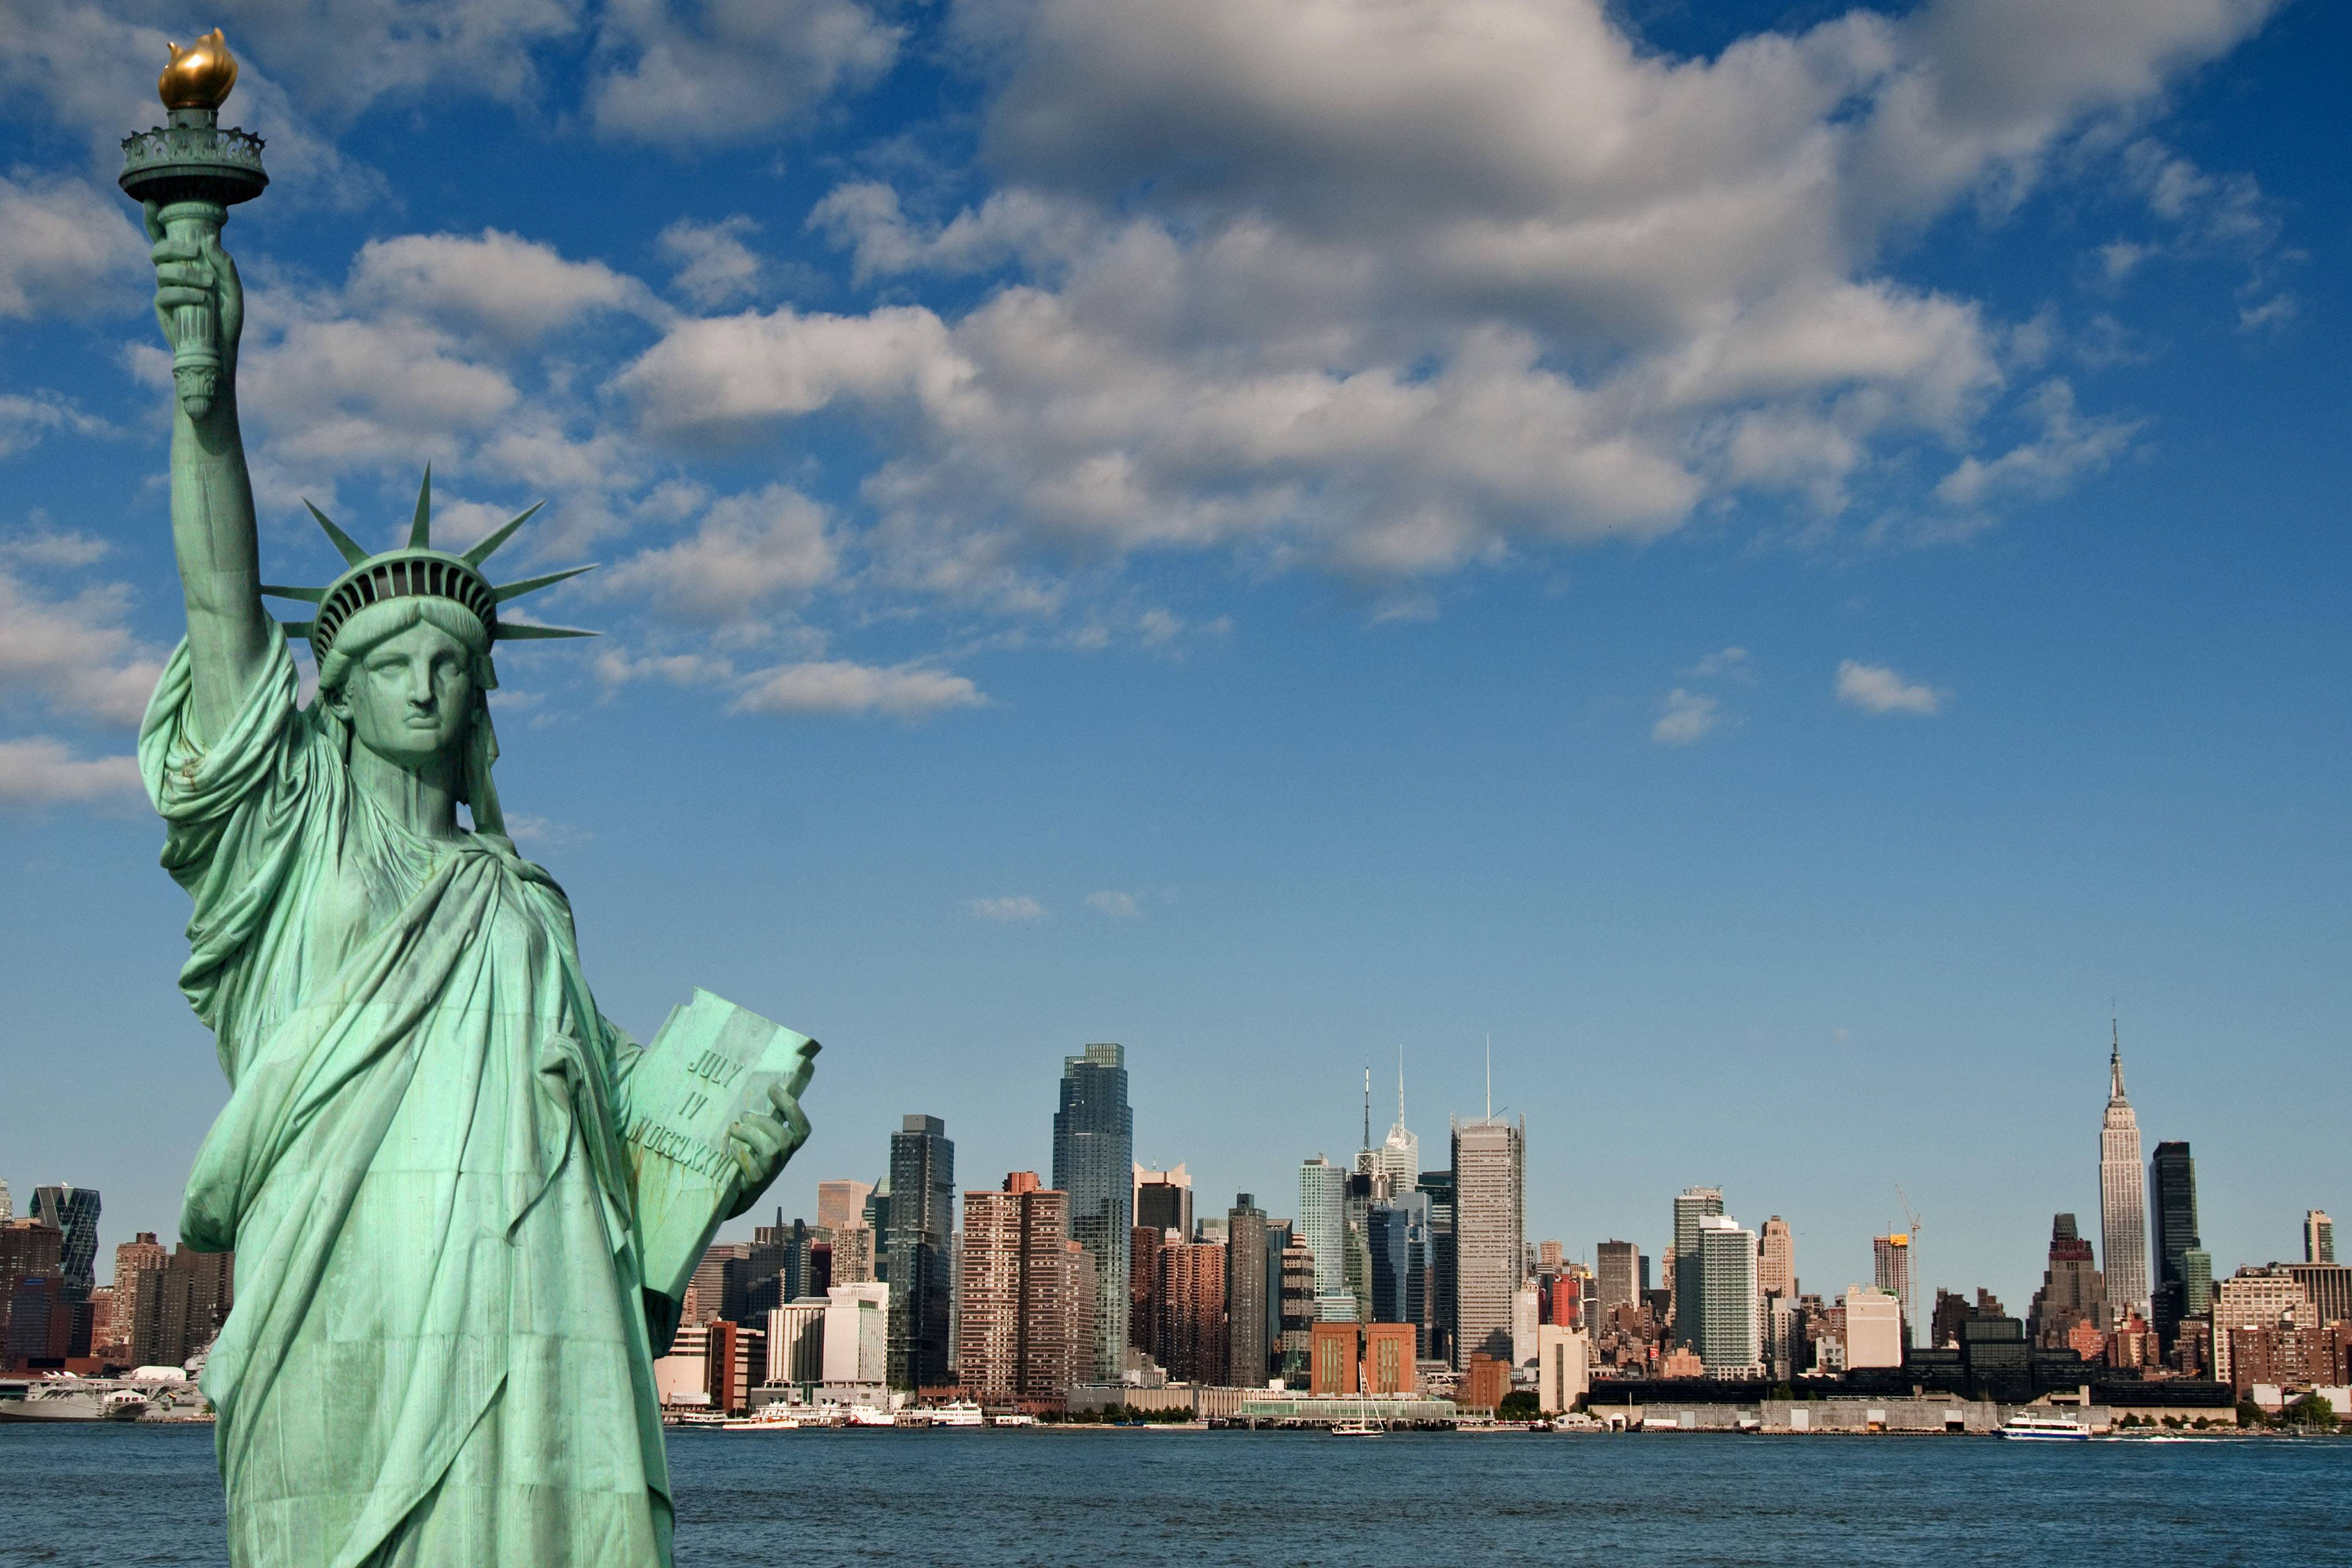 NEW YORK&STATUE OF LIBERTY